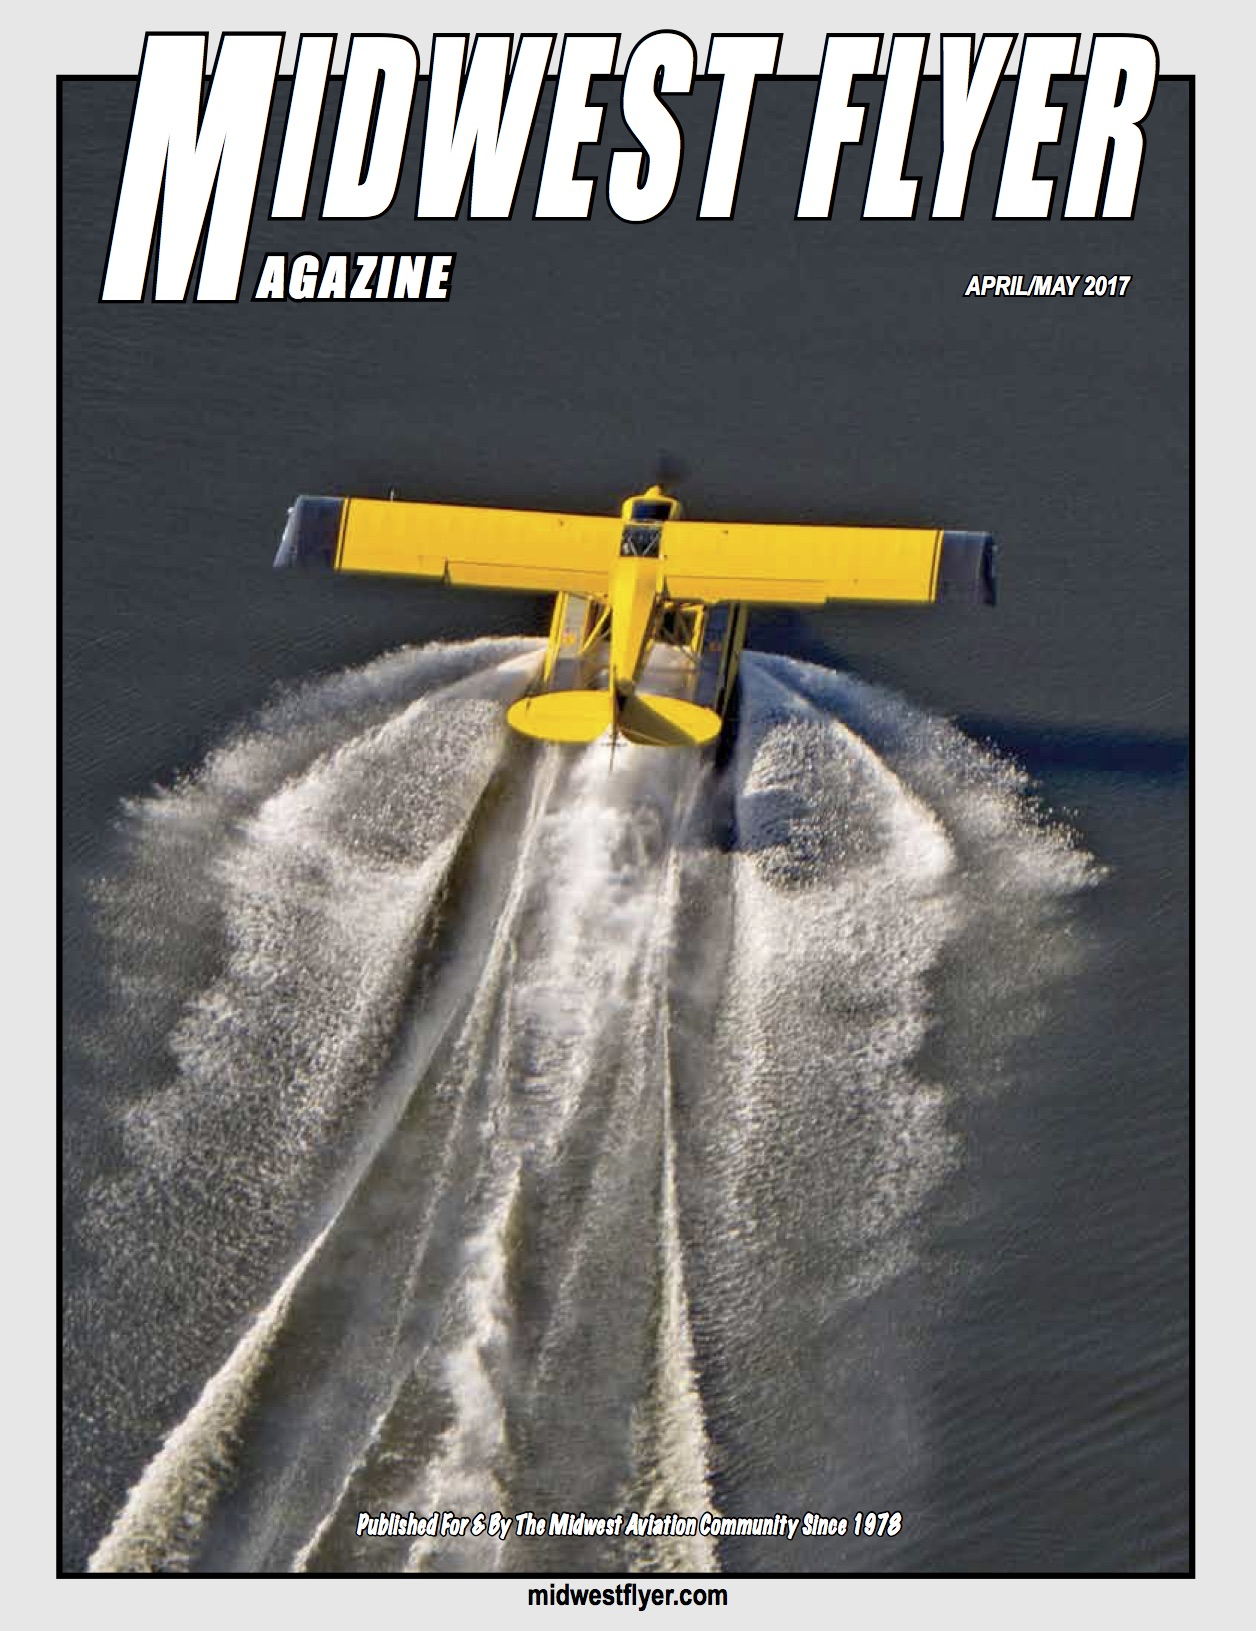 Midwest Flyer Magazine - April/May Cover